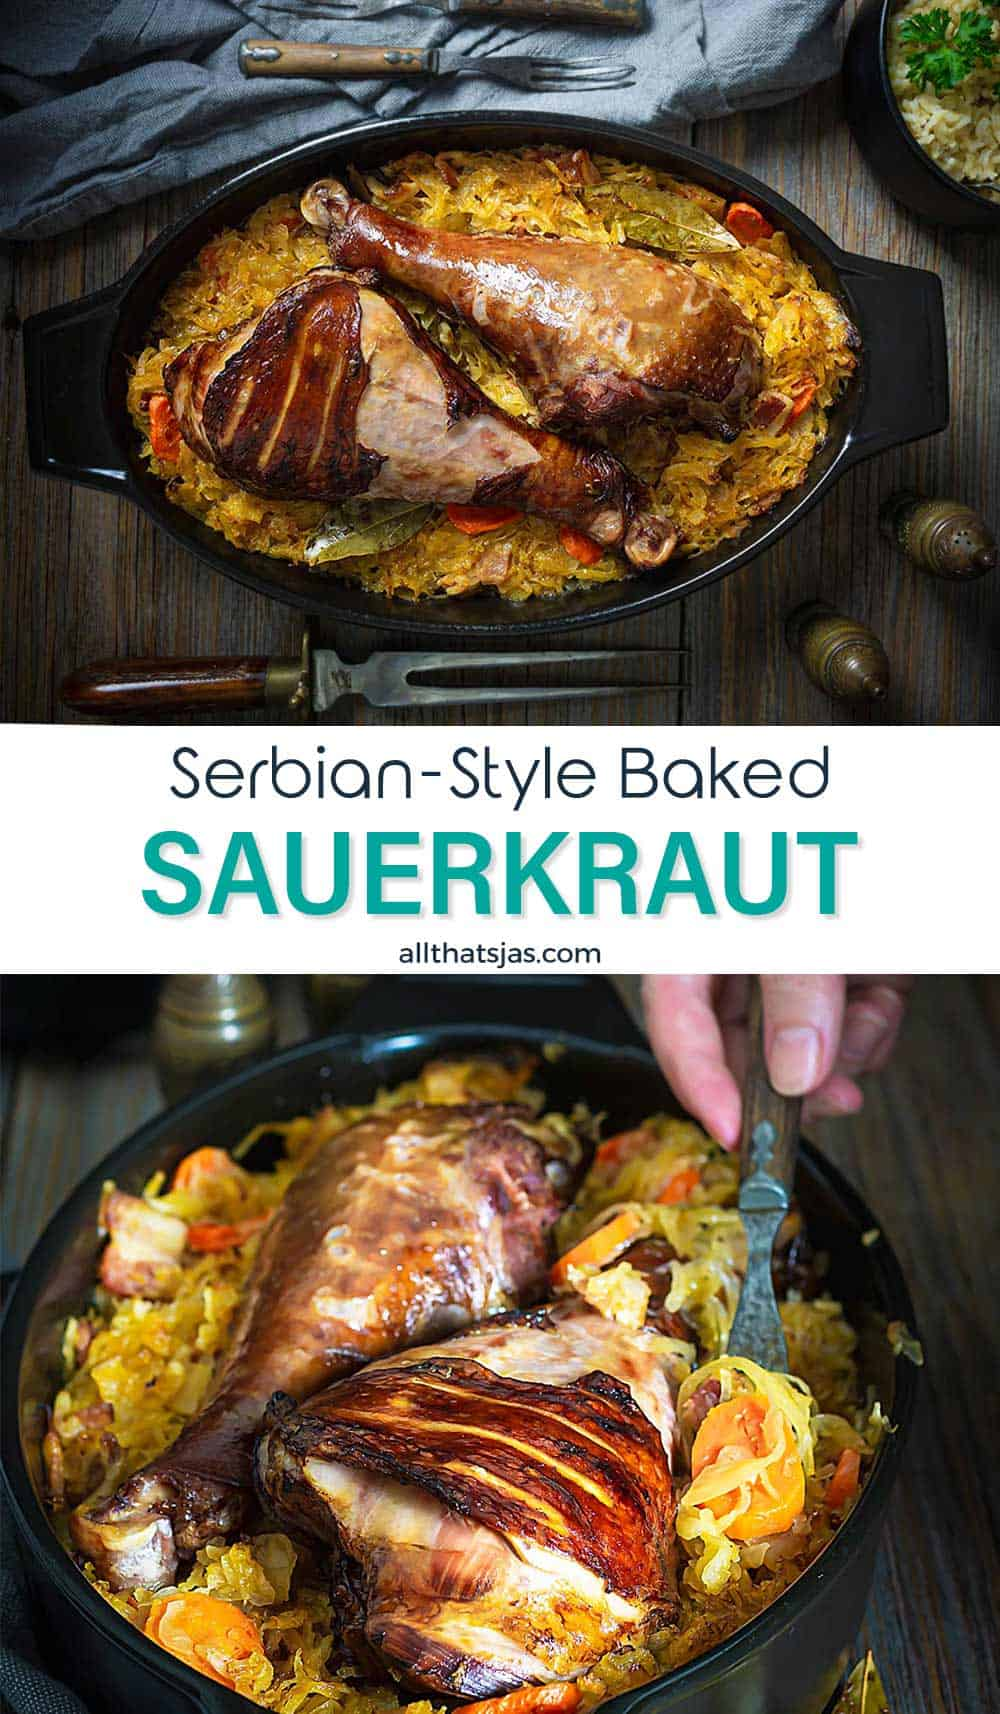 Two photo image fo Serbian dish with text overlay in the middle